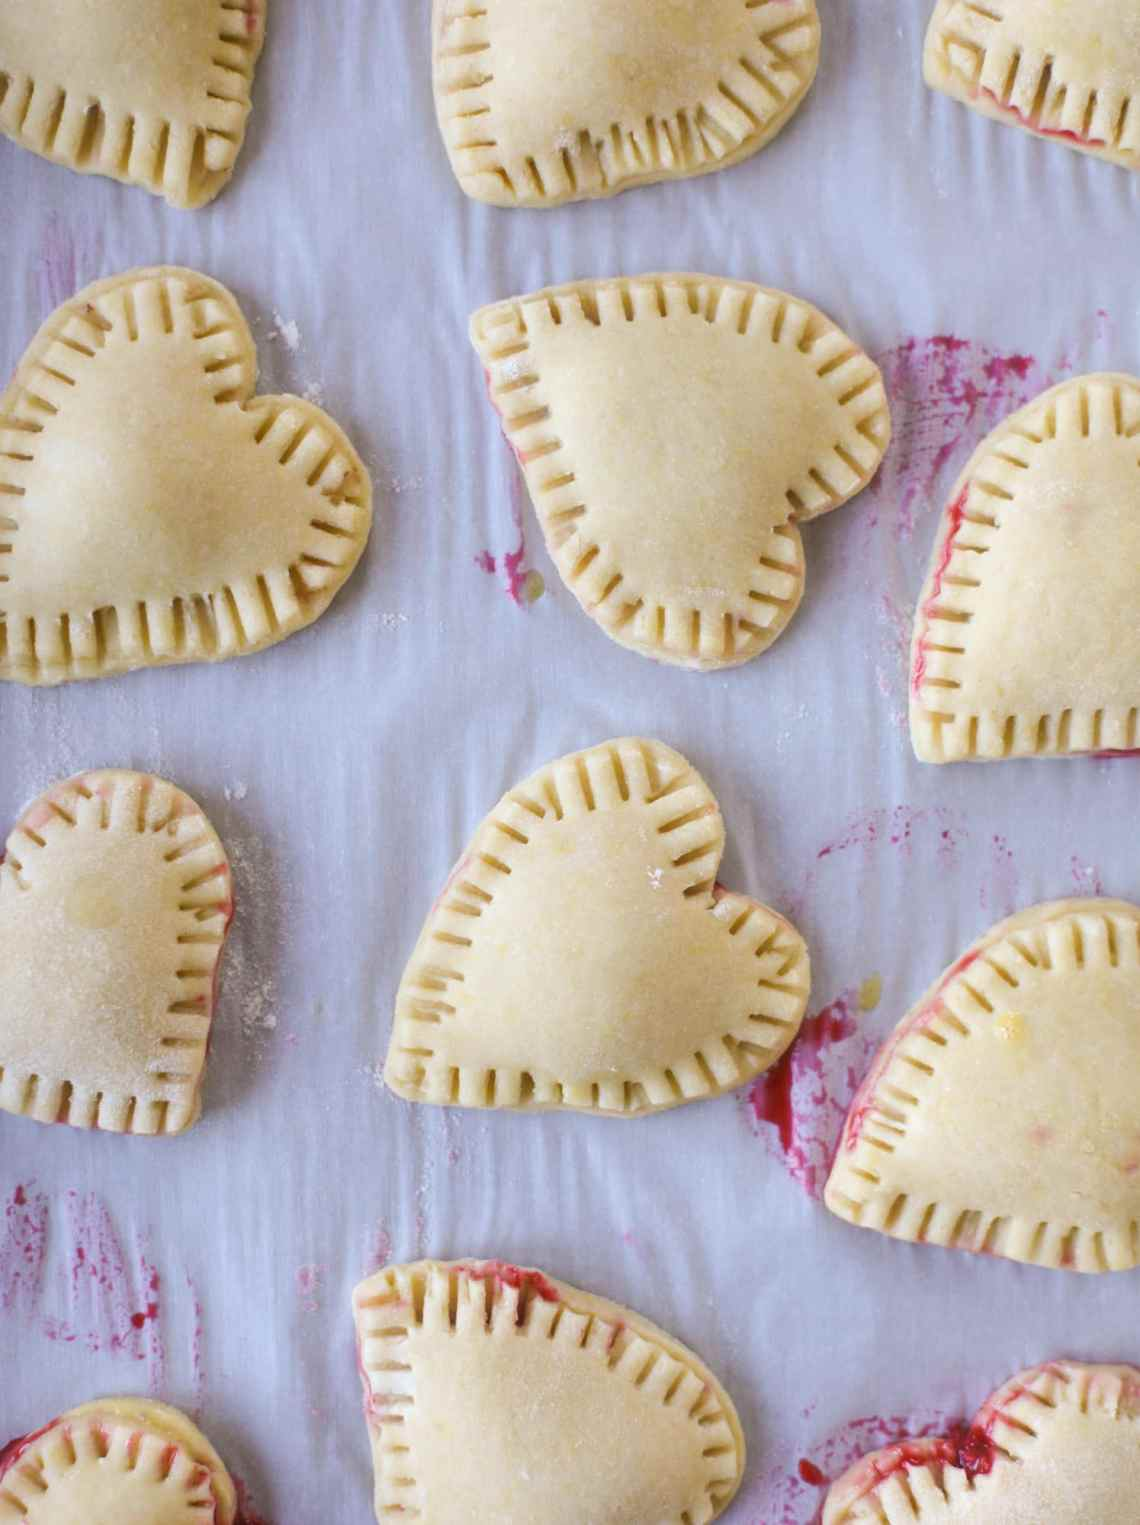 These adorable mini heart pies are filled with a homemade raspberry compote and creamy, chocolatey nutella. So fun and easy to make! I howsweeteats.com #heart #pie